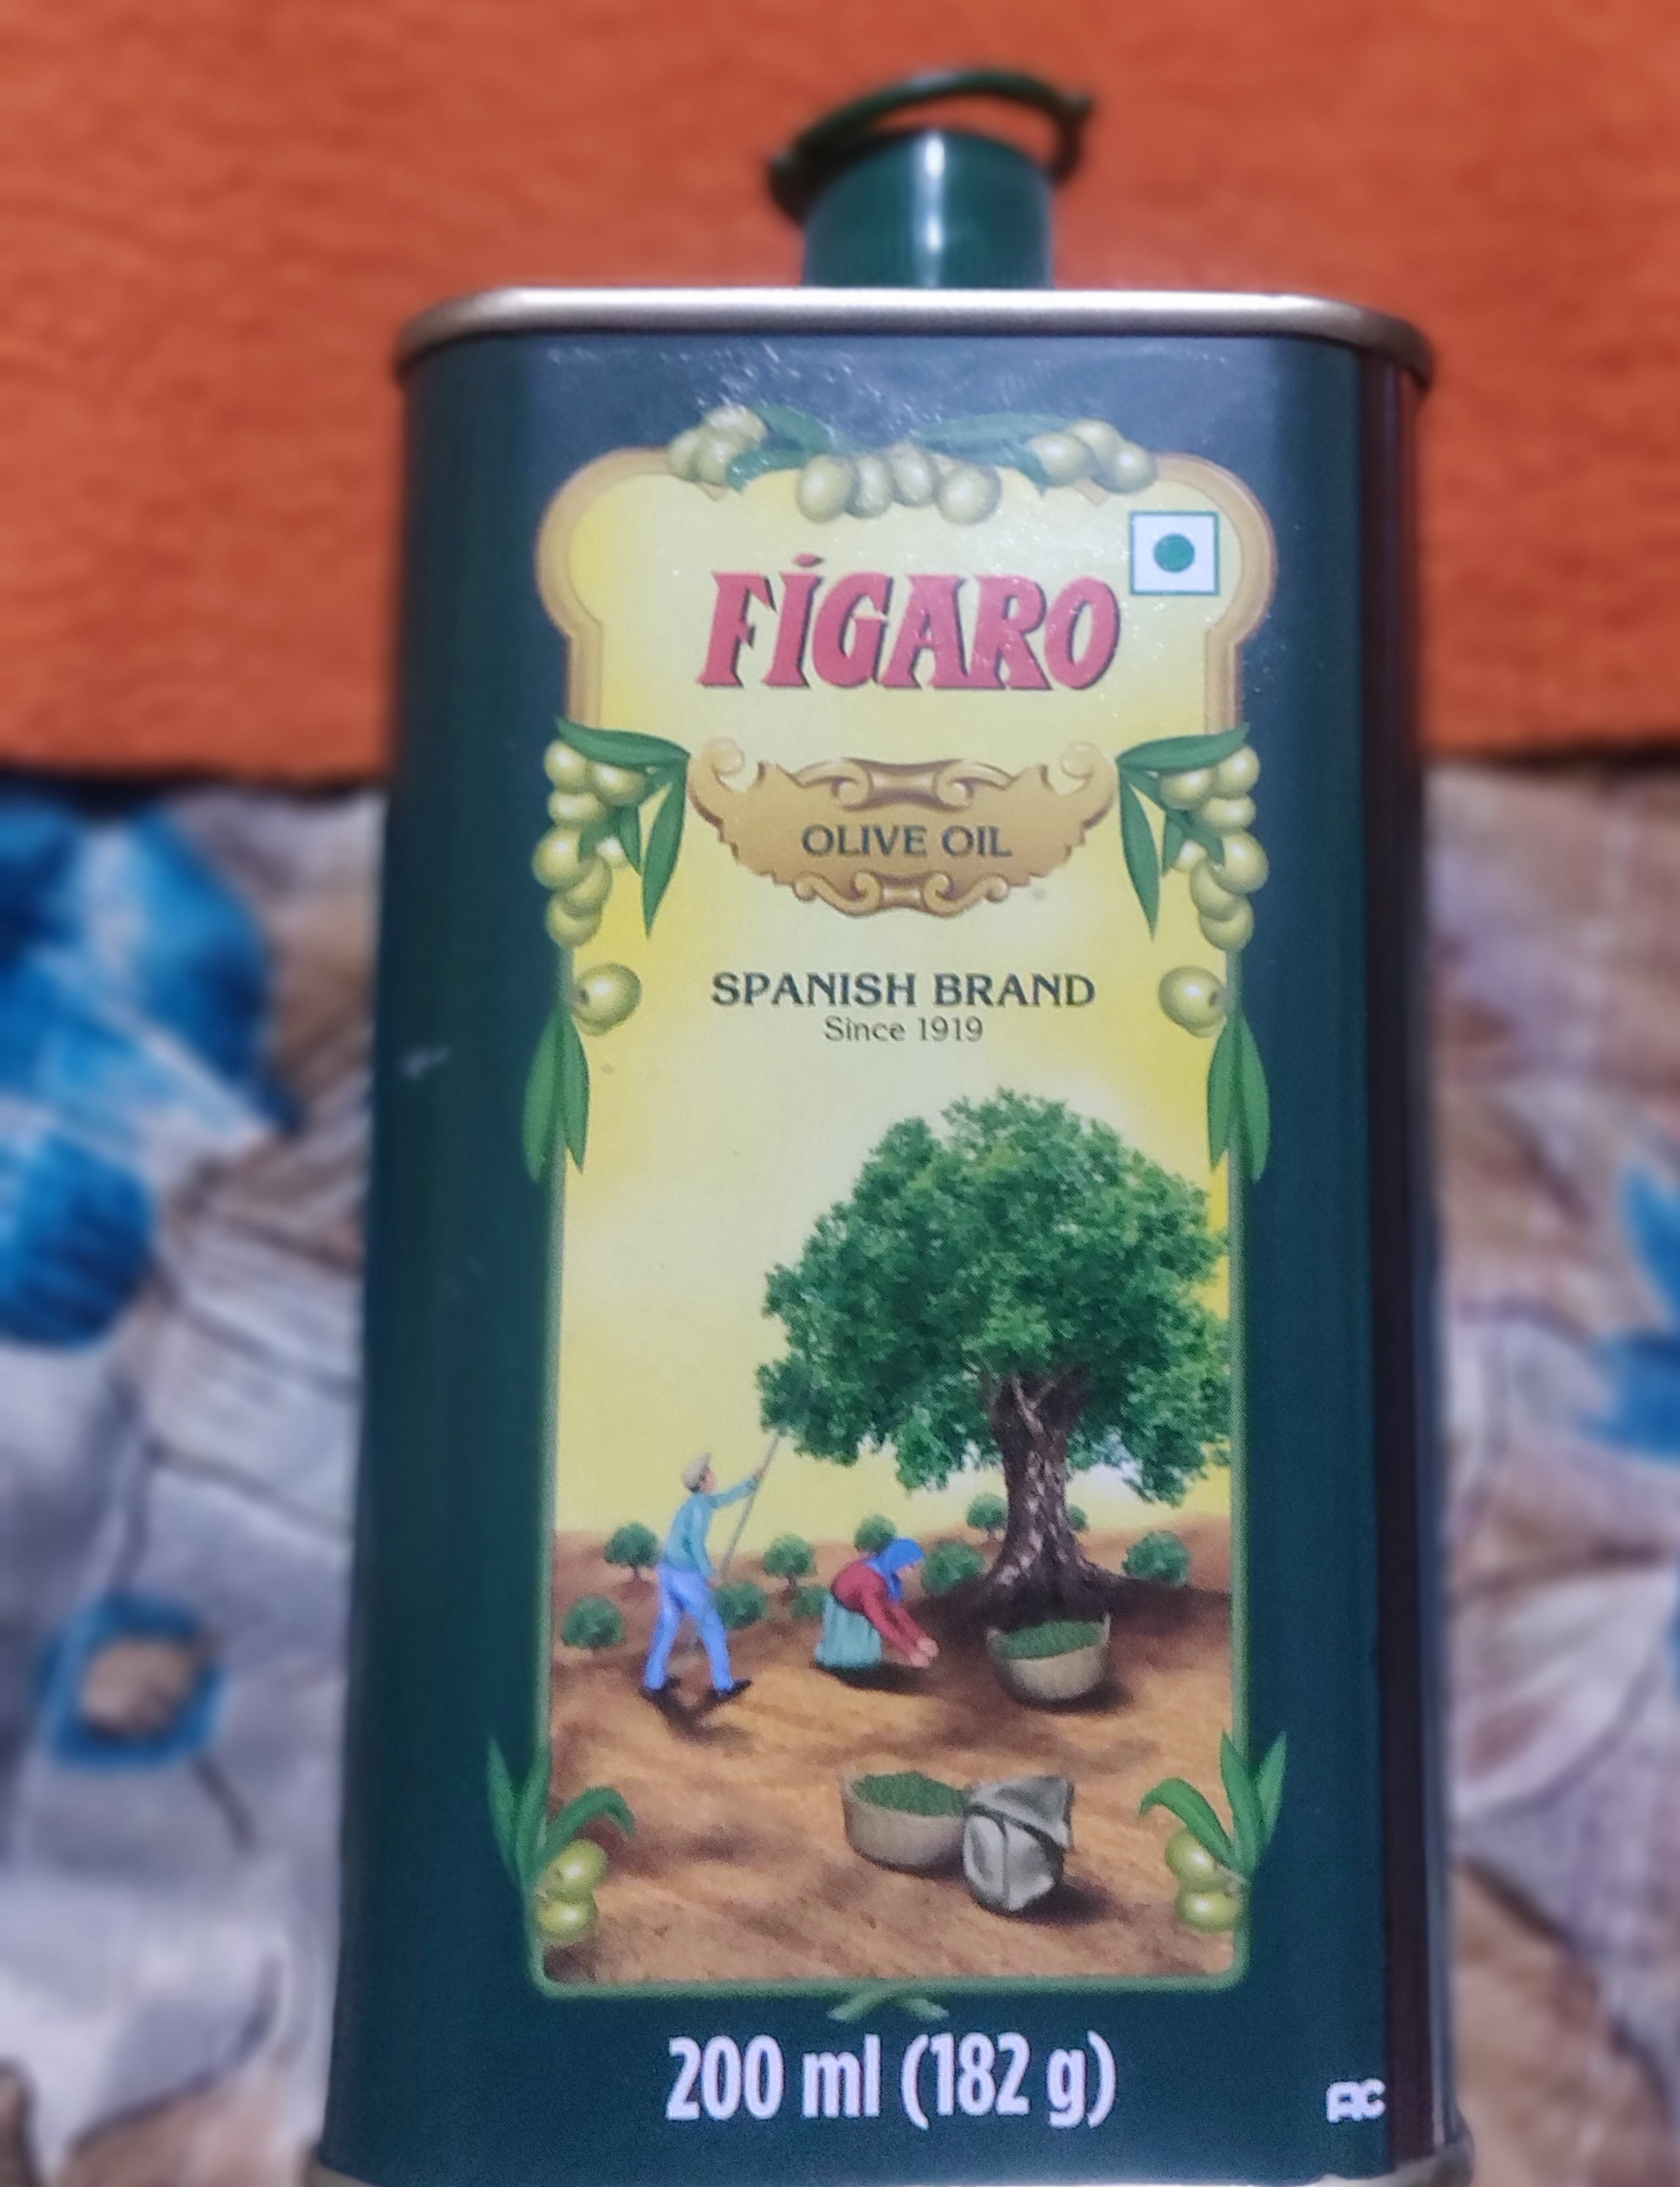 Figaro Baby Massage Olive Oil-Good Product-By harsha_kumari